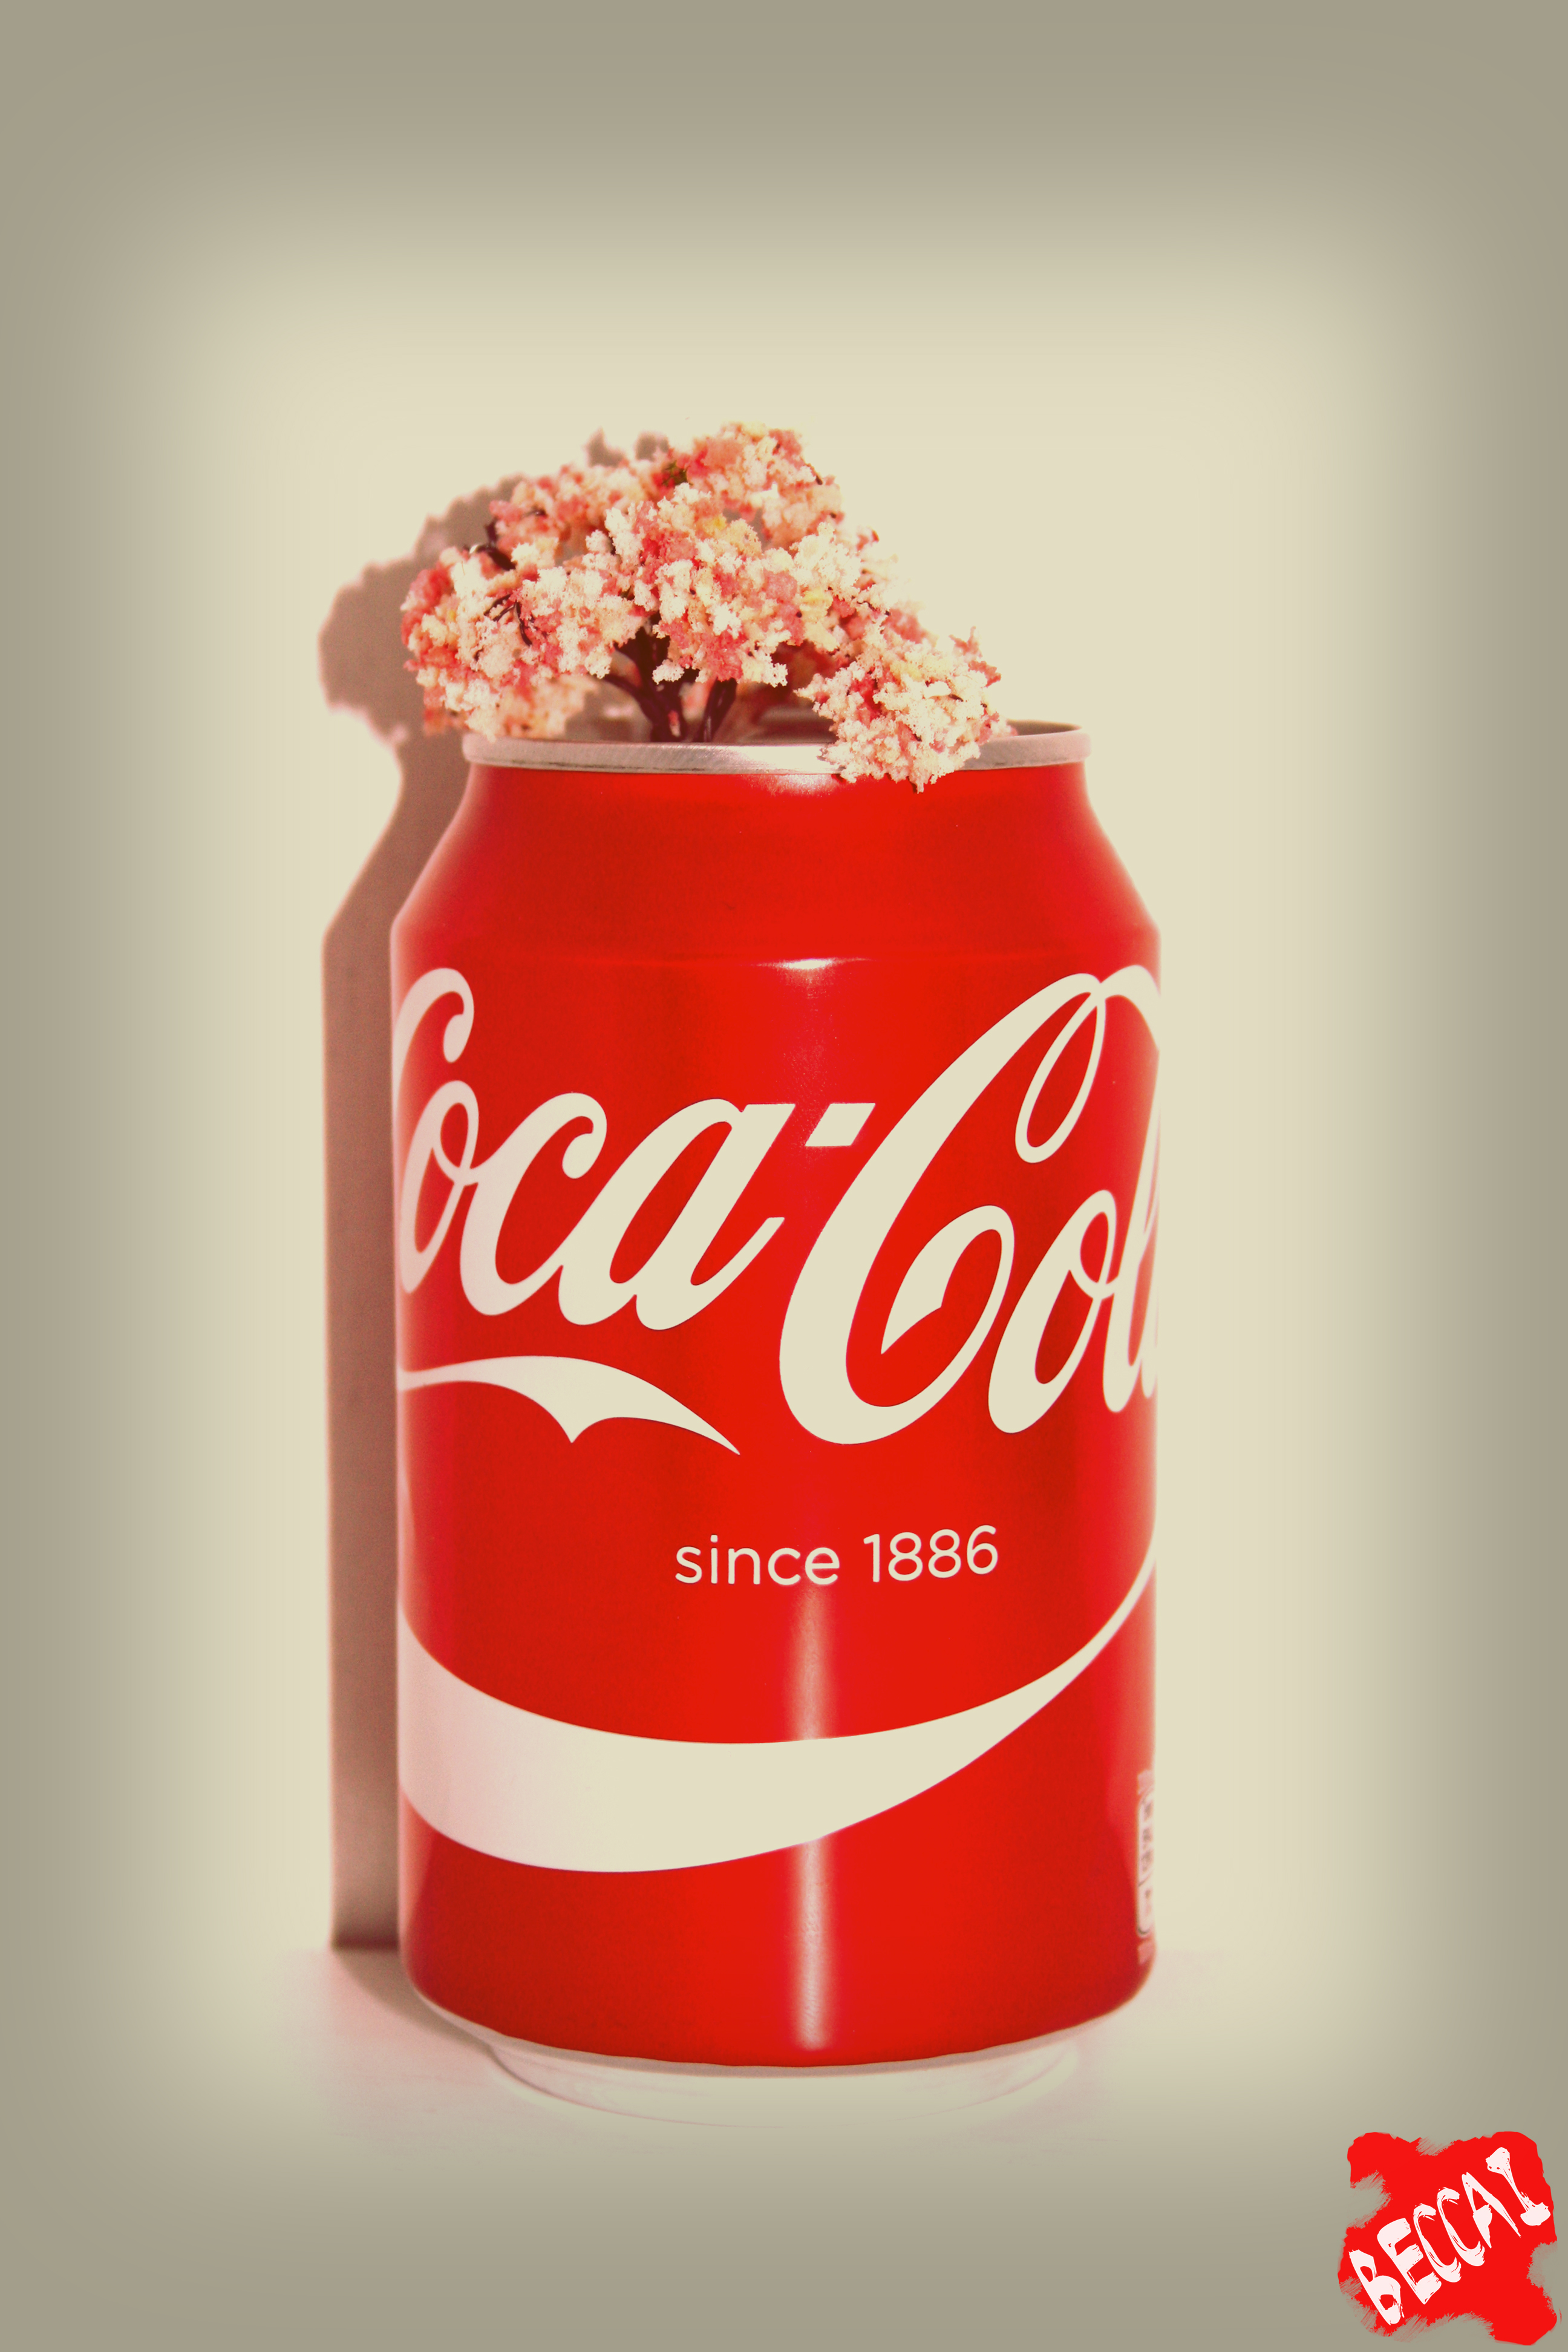 coca cola submission The coca-cola company appreciates receiving your suggestions we have a policy that prevents us from considering ideas related to advertising, promotions and formula modifications to any of our existing products.